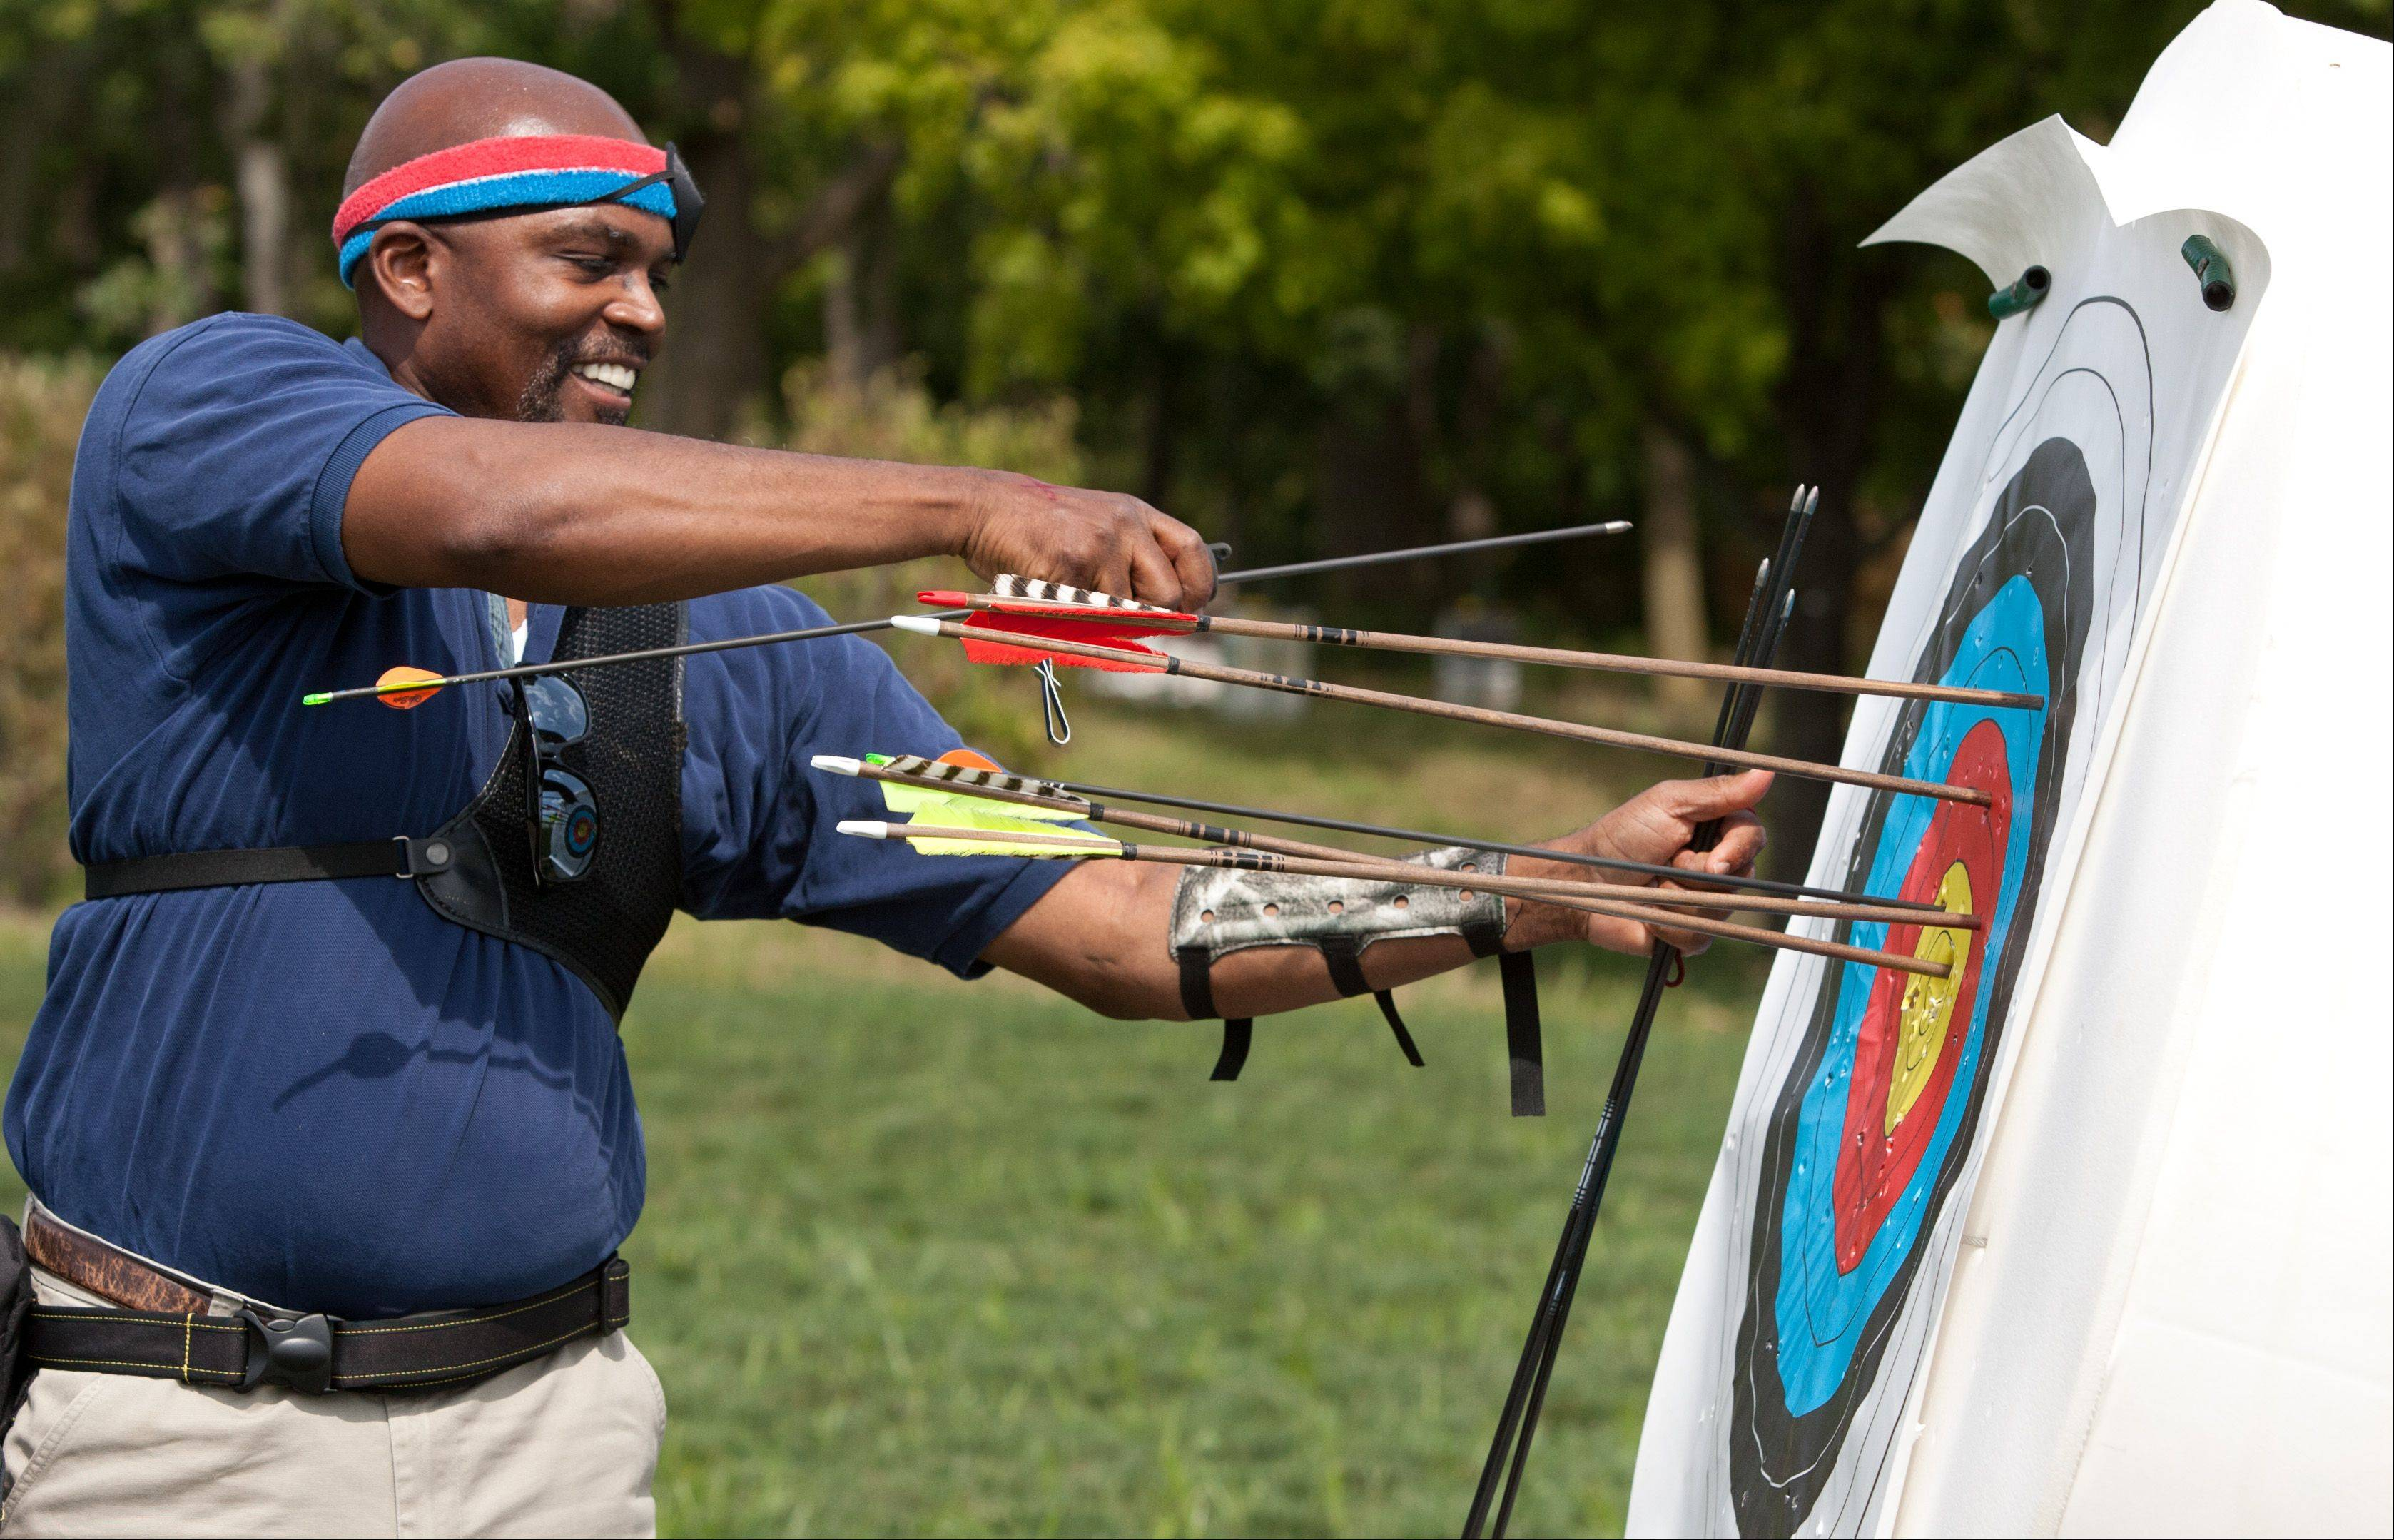 Daniel White/dwhite@dailyherald.com Priest Walker of Wheaton retrieves his arrows during the DuPage County Forest Preserve's opening of an upgraded archery range at the Blackwell Forest Preserve.